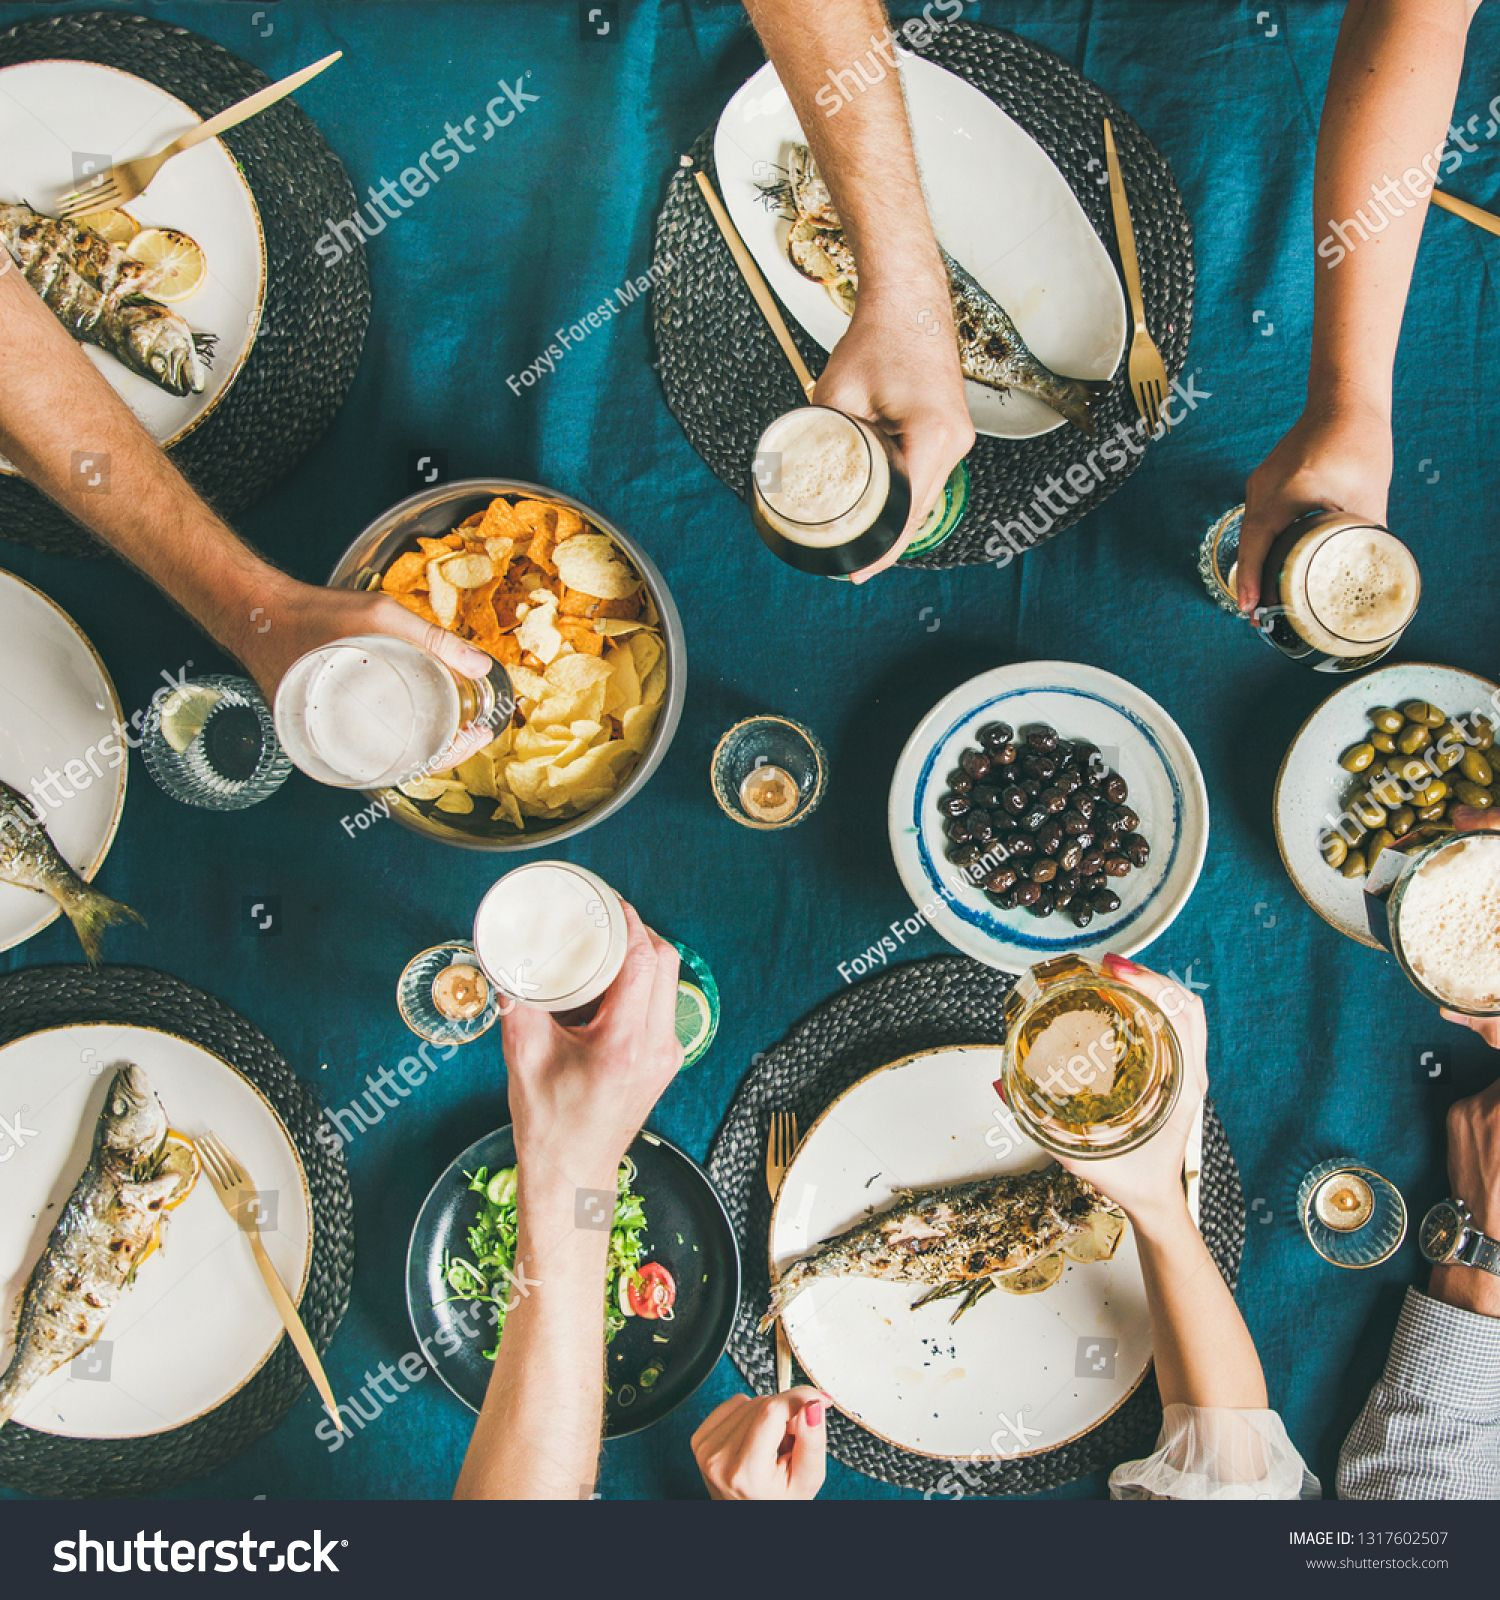 Fish, chips, beer party gathering of friends eating and drinking. Flat-lay of human hands, beer glasses, grilled sea bass fishes, vegetable salad, roasted potatoes and potato chips, square crop ,